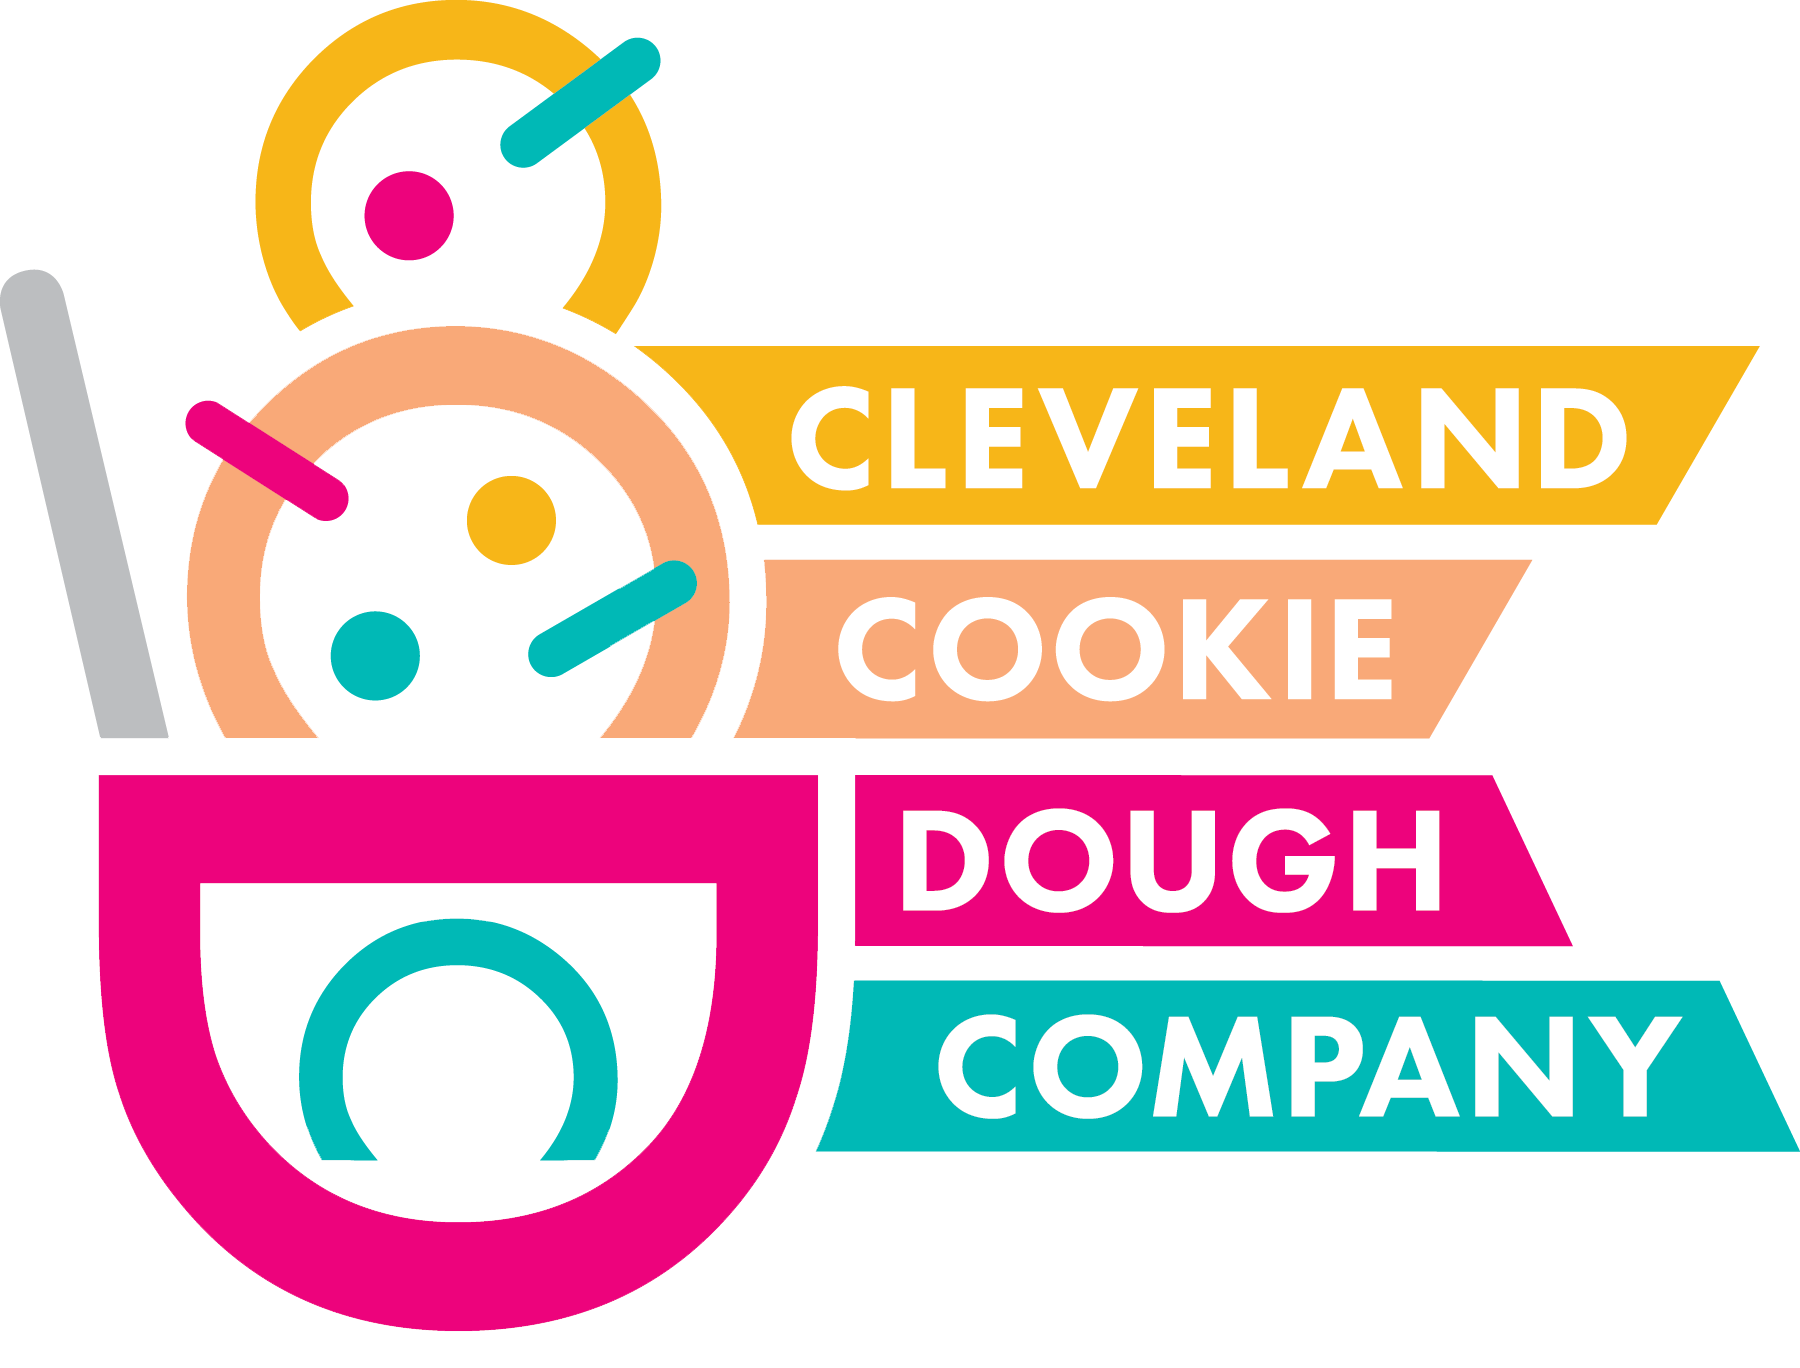 CCDC_logo_transparent_FORWEB - Cleveland Cookie Dough Company.png